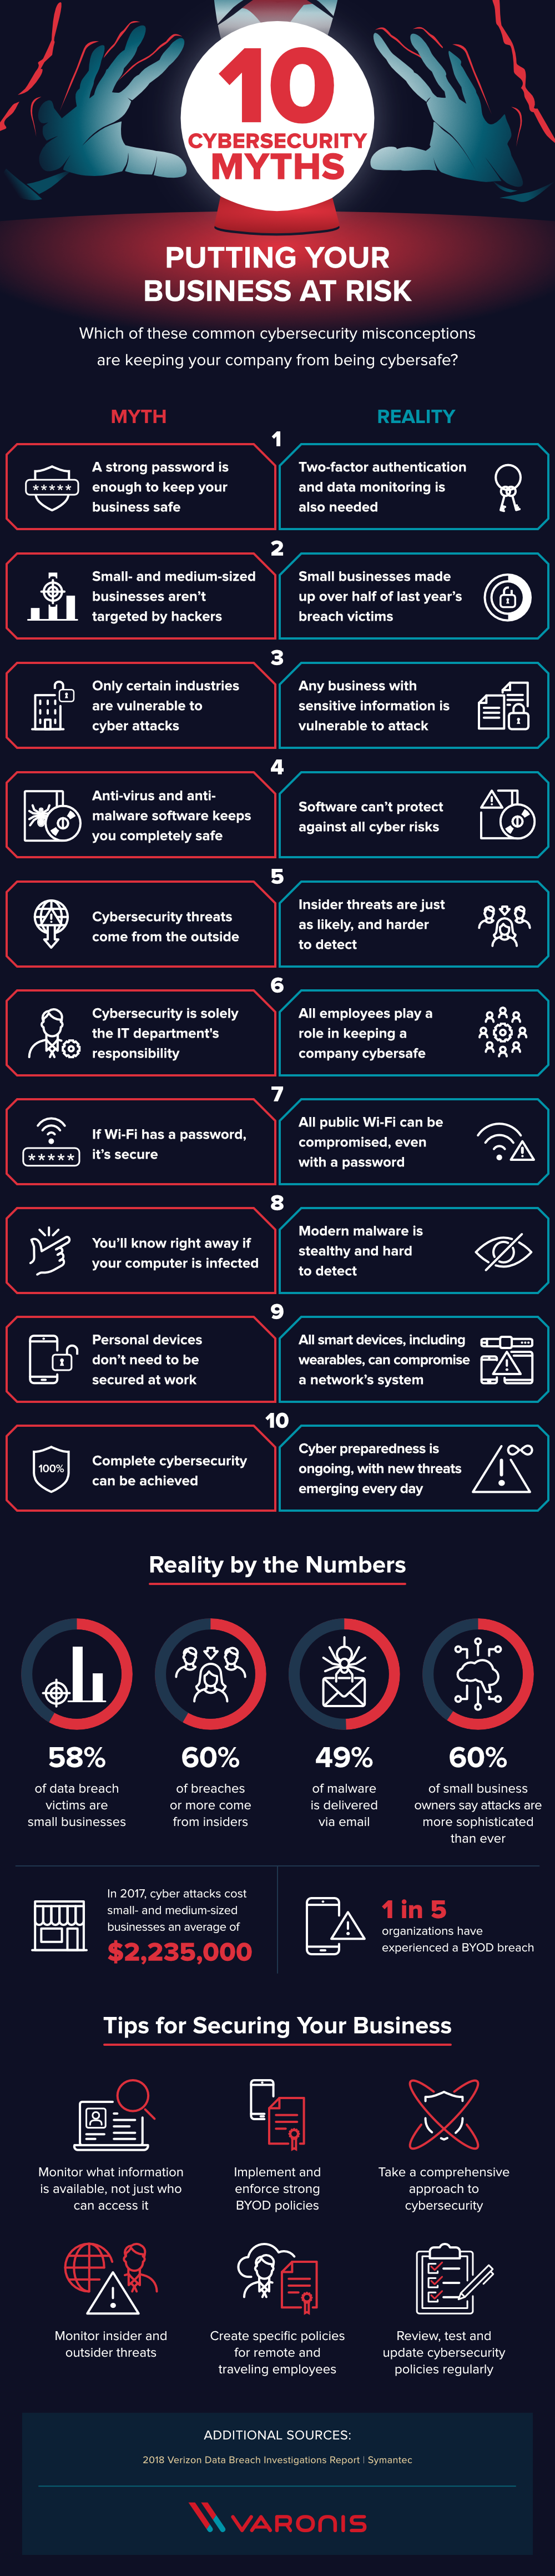 The Biggest Cybersecurity Myths (INFOGRAPHIC)